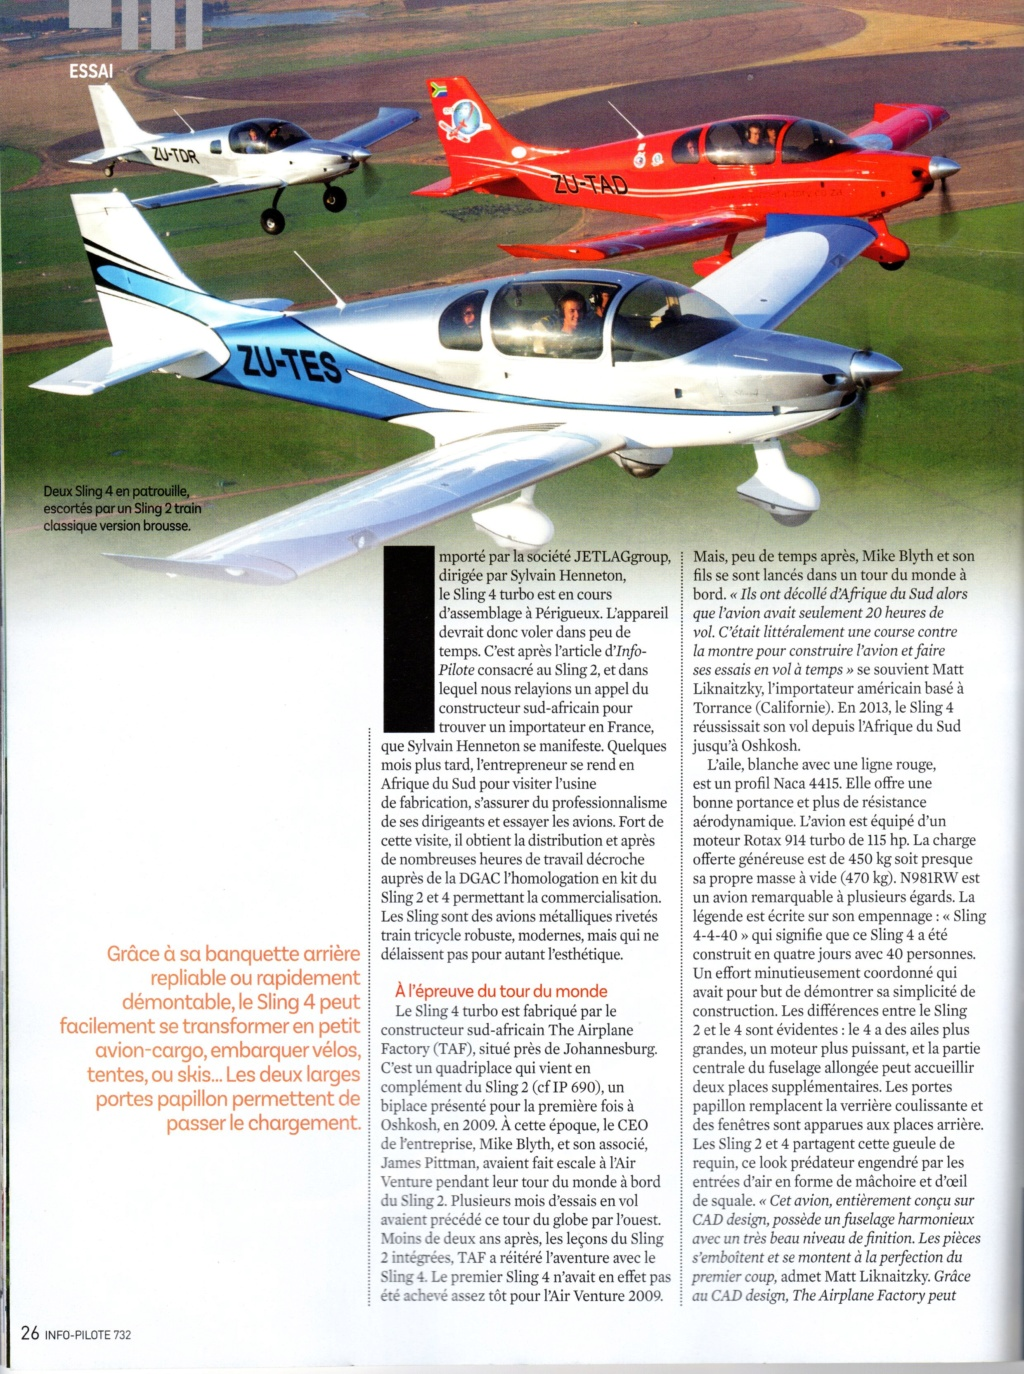 Sling 4 Article Info Pilote 17030425